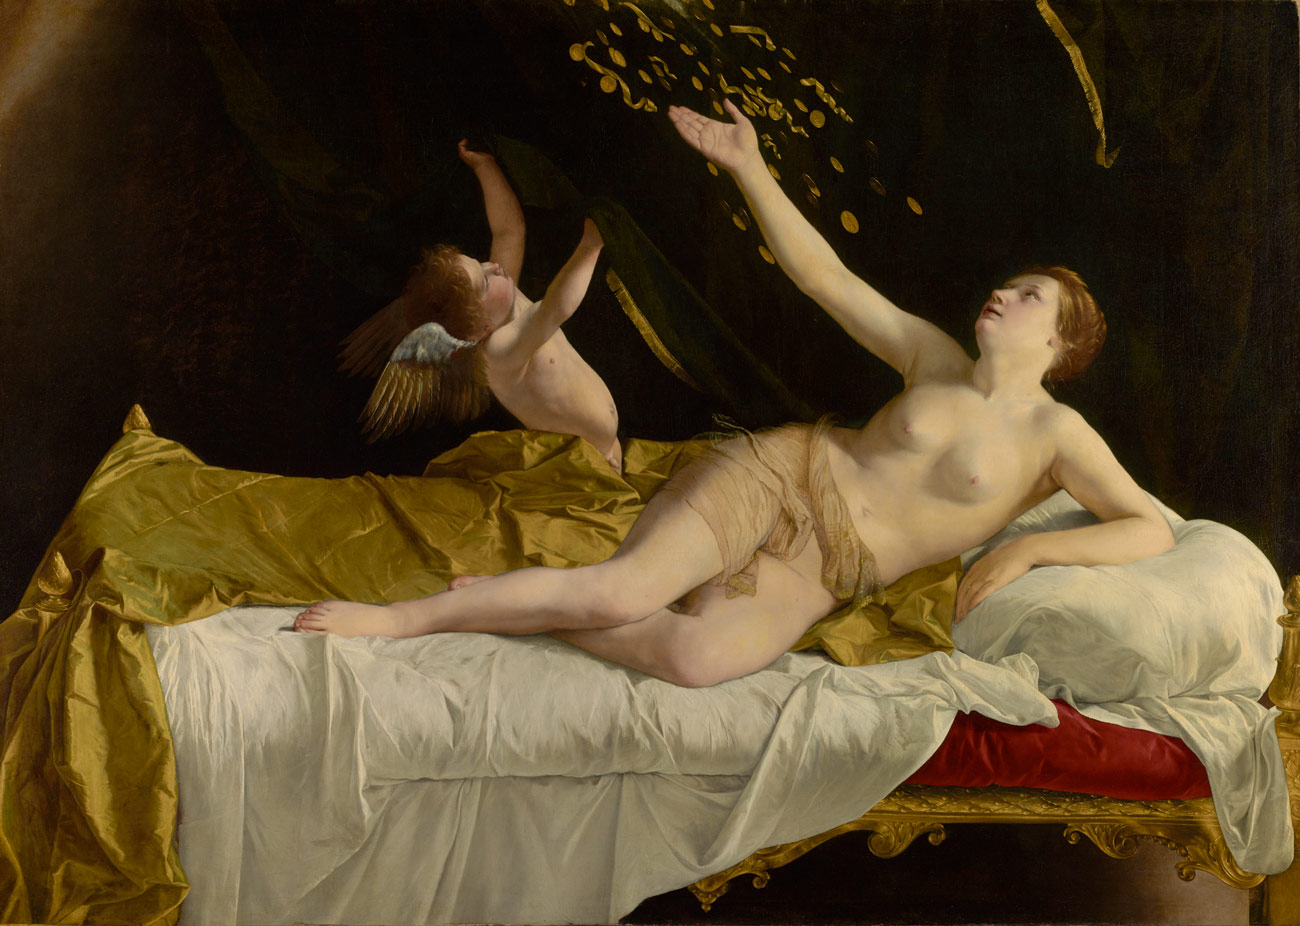 Painting of a nude woman with Cupid on a bed reaching their arms up as gold coins and ribbons fall down upon them.